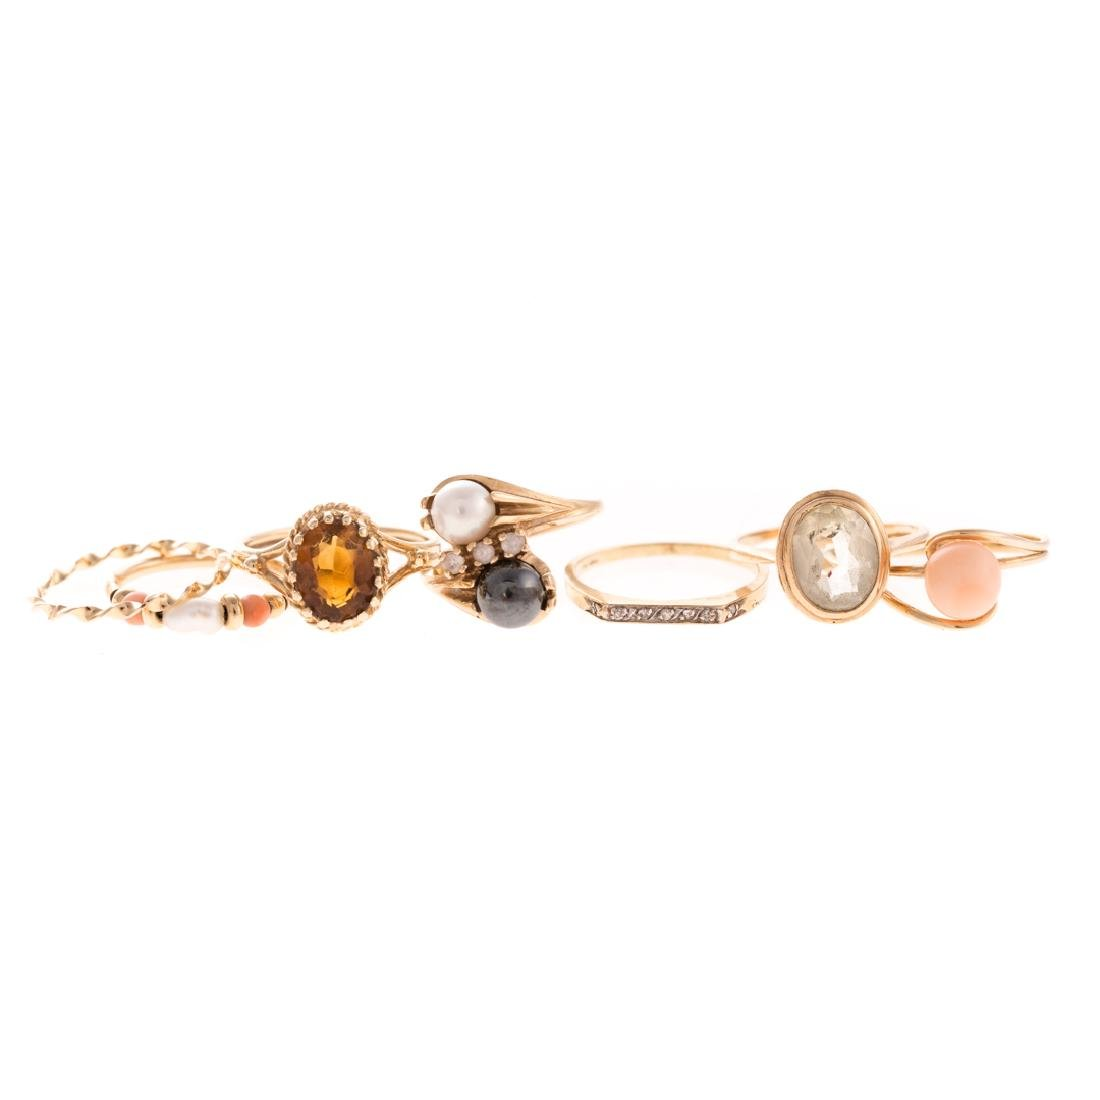 A Collection of Lady's Gemstone Rings in Gold